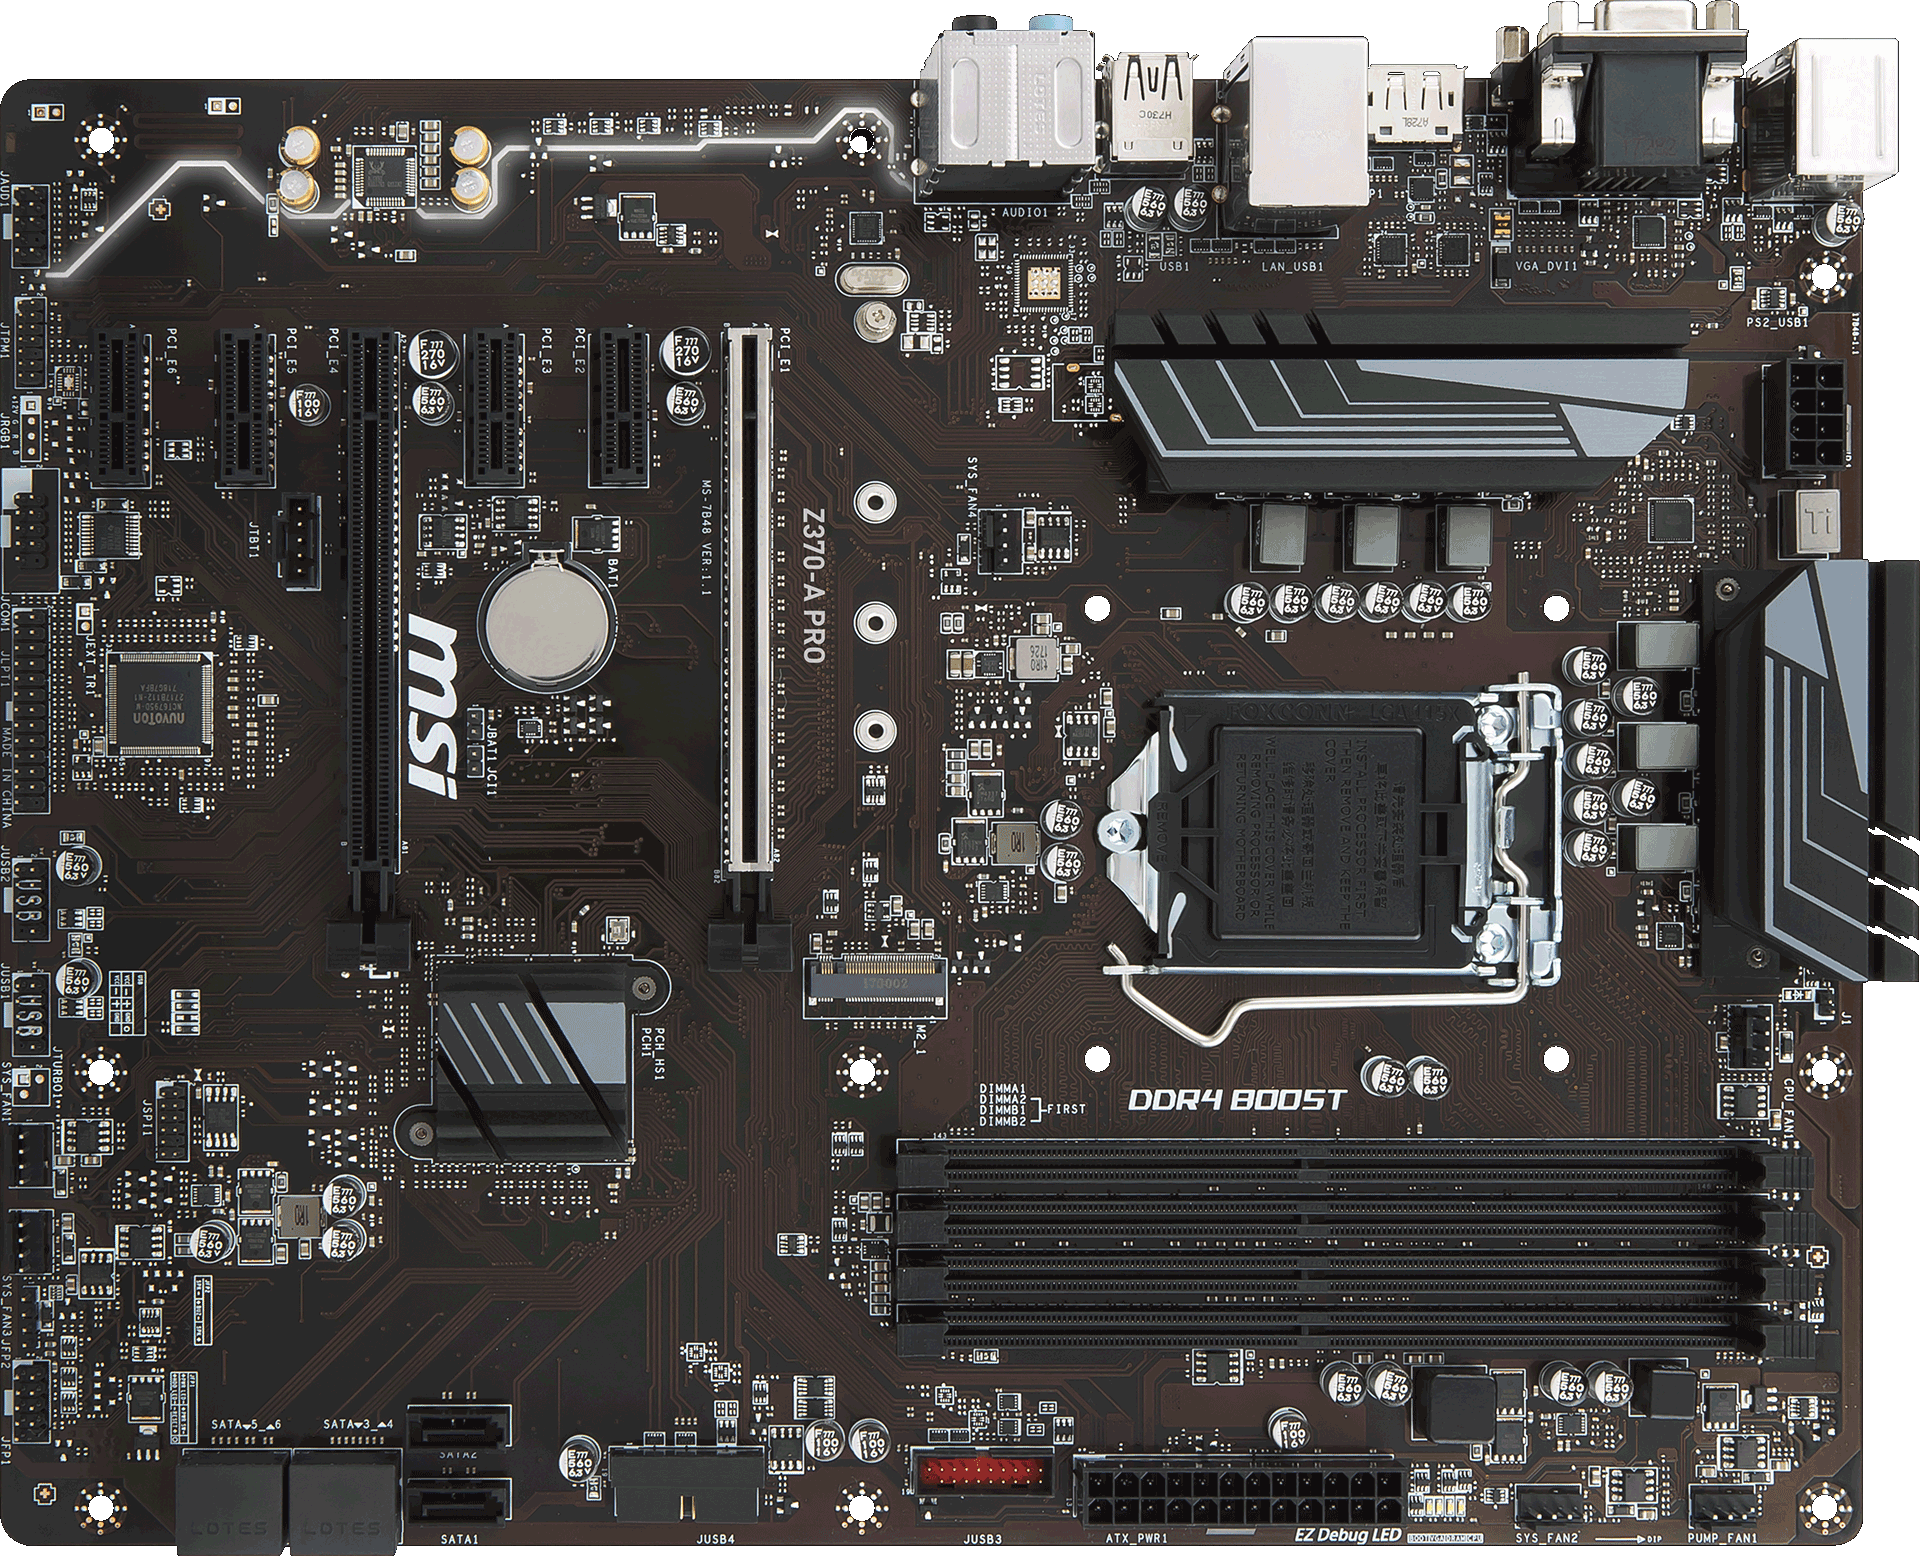 Z370 A Pro Motherboard The World Leader In Design There Are 2 Boards Main Board And Second One For Controls Tuning